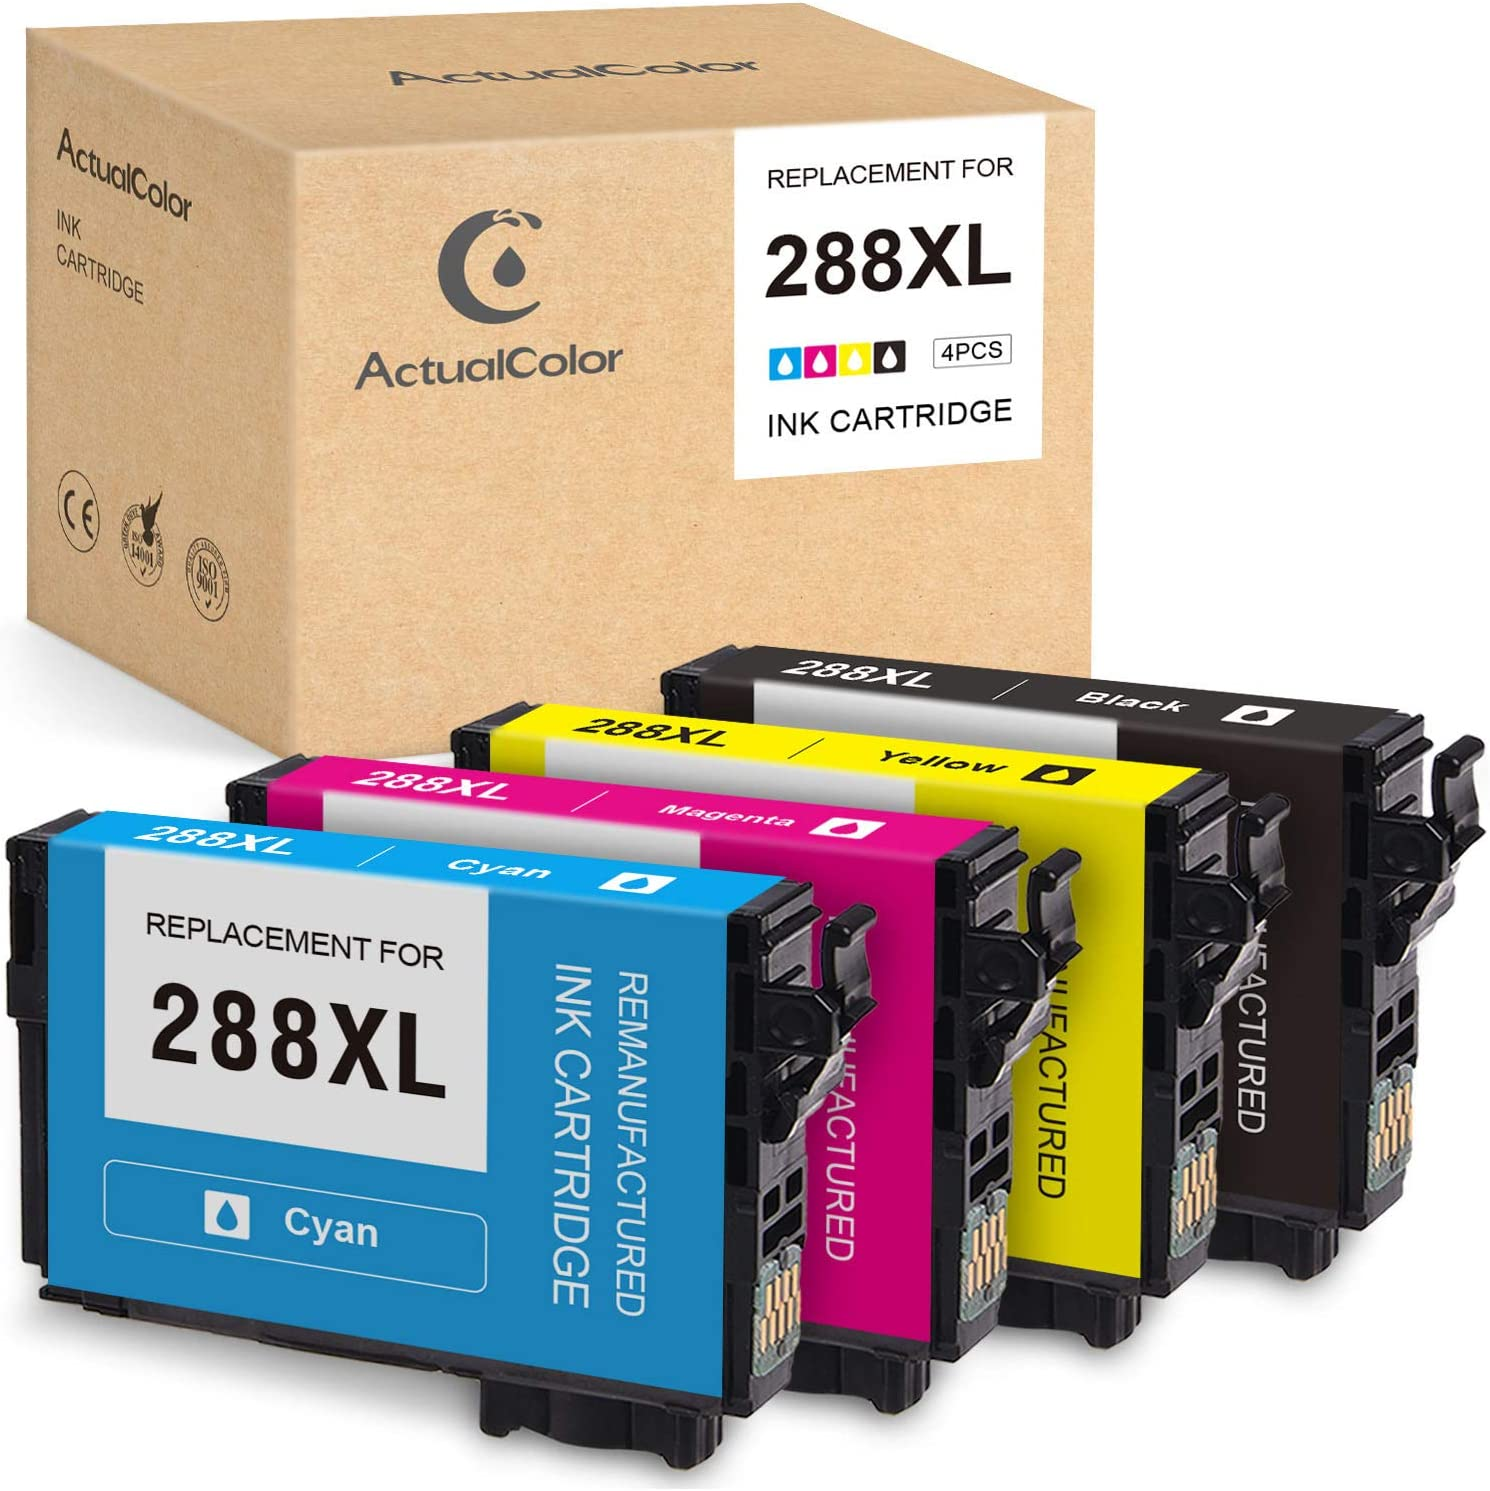 ActualColor C Remanufactured Ink Cartridge Replacement for Epson 288XL 288 XL T288XL Ink Cartridges for Expression Home XP-440 XP-430 XP-340 XP-330 XP-446 XP-434(Black, Cyan, Magenta, Yellow, 4-Pack)